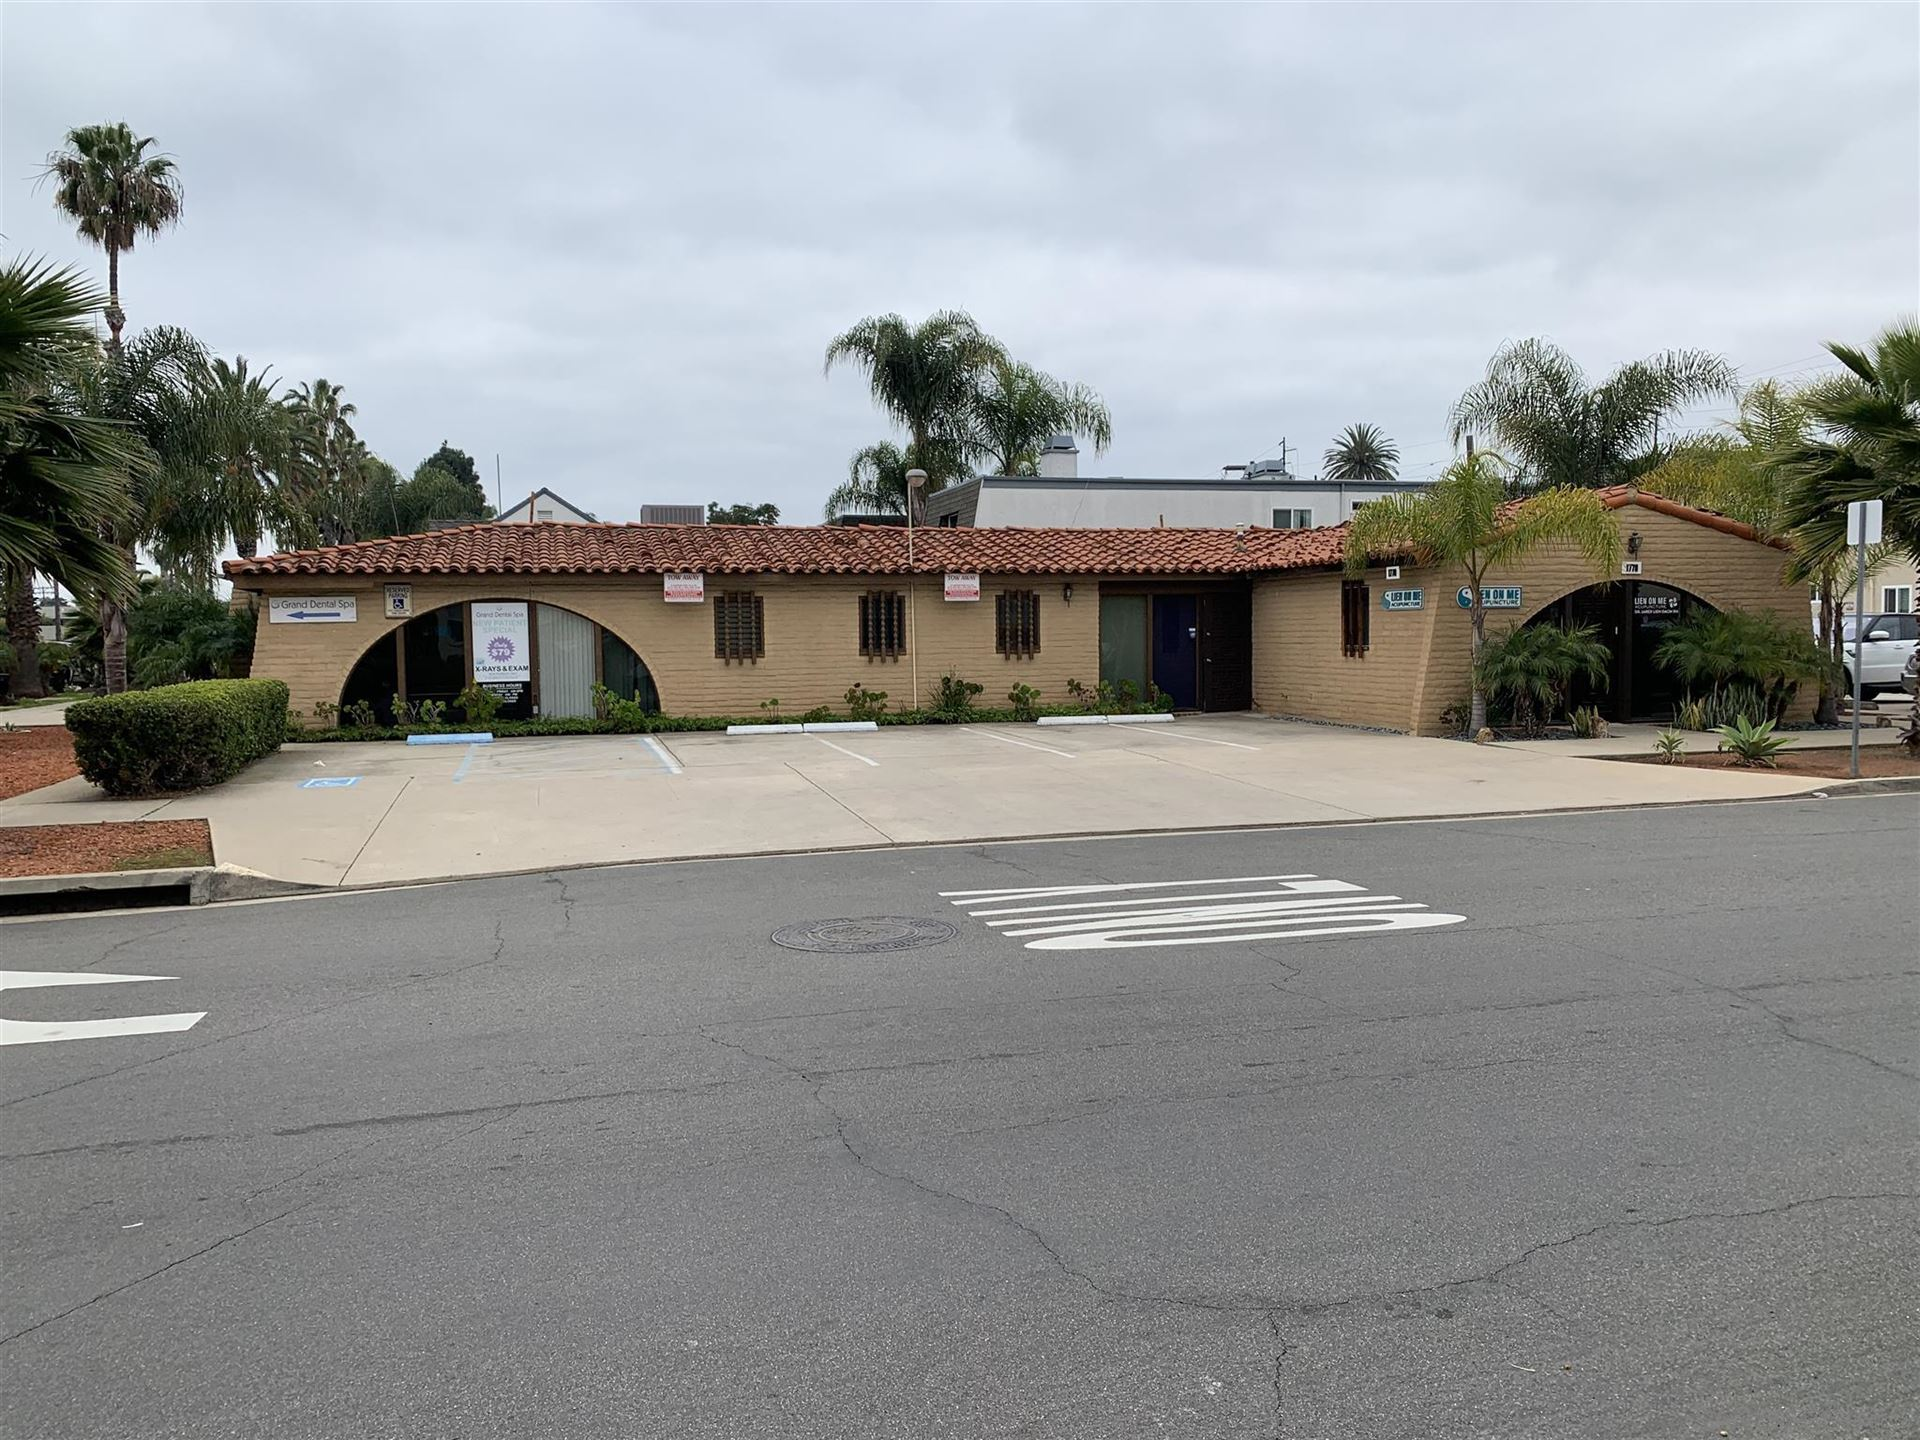 Photo of 1776-1778 Grand Ave, San Diego, CA 92109 (MLS # 210007414)